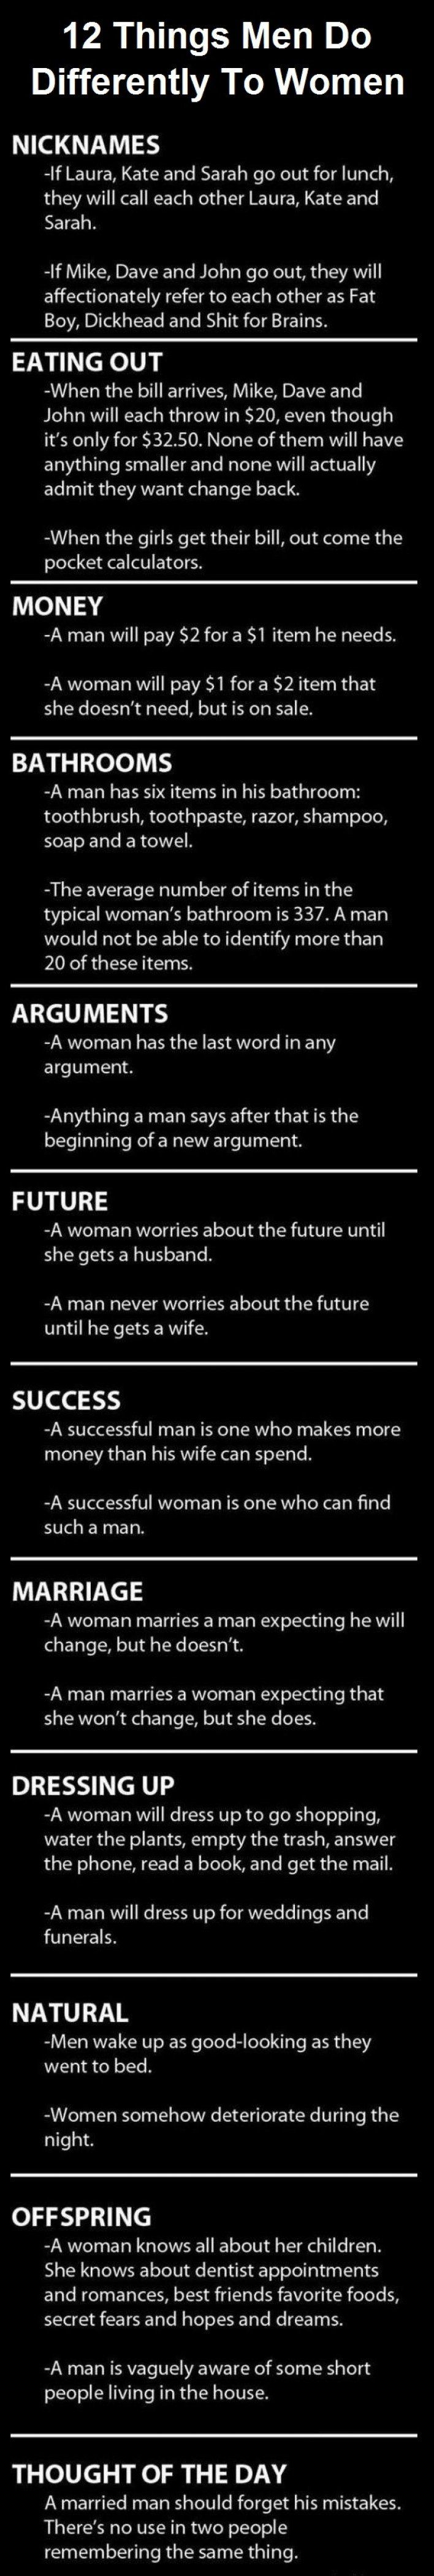 Moral of the story: A married man should forget his mistakes. There's no use in tow people remembering the same thing.